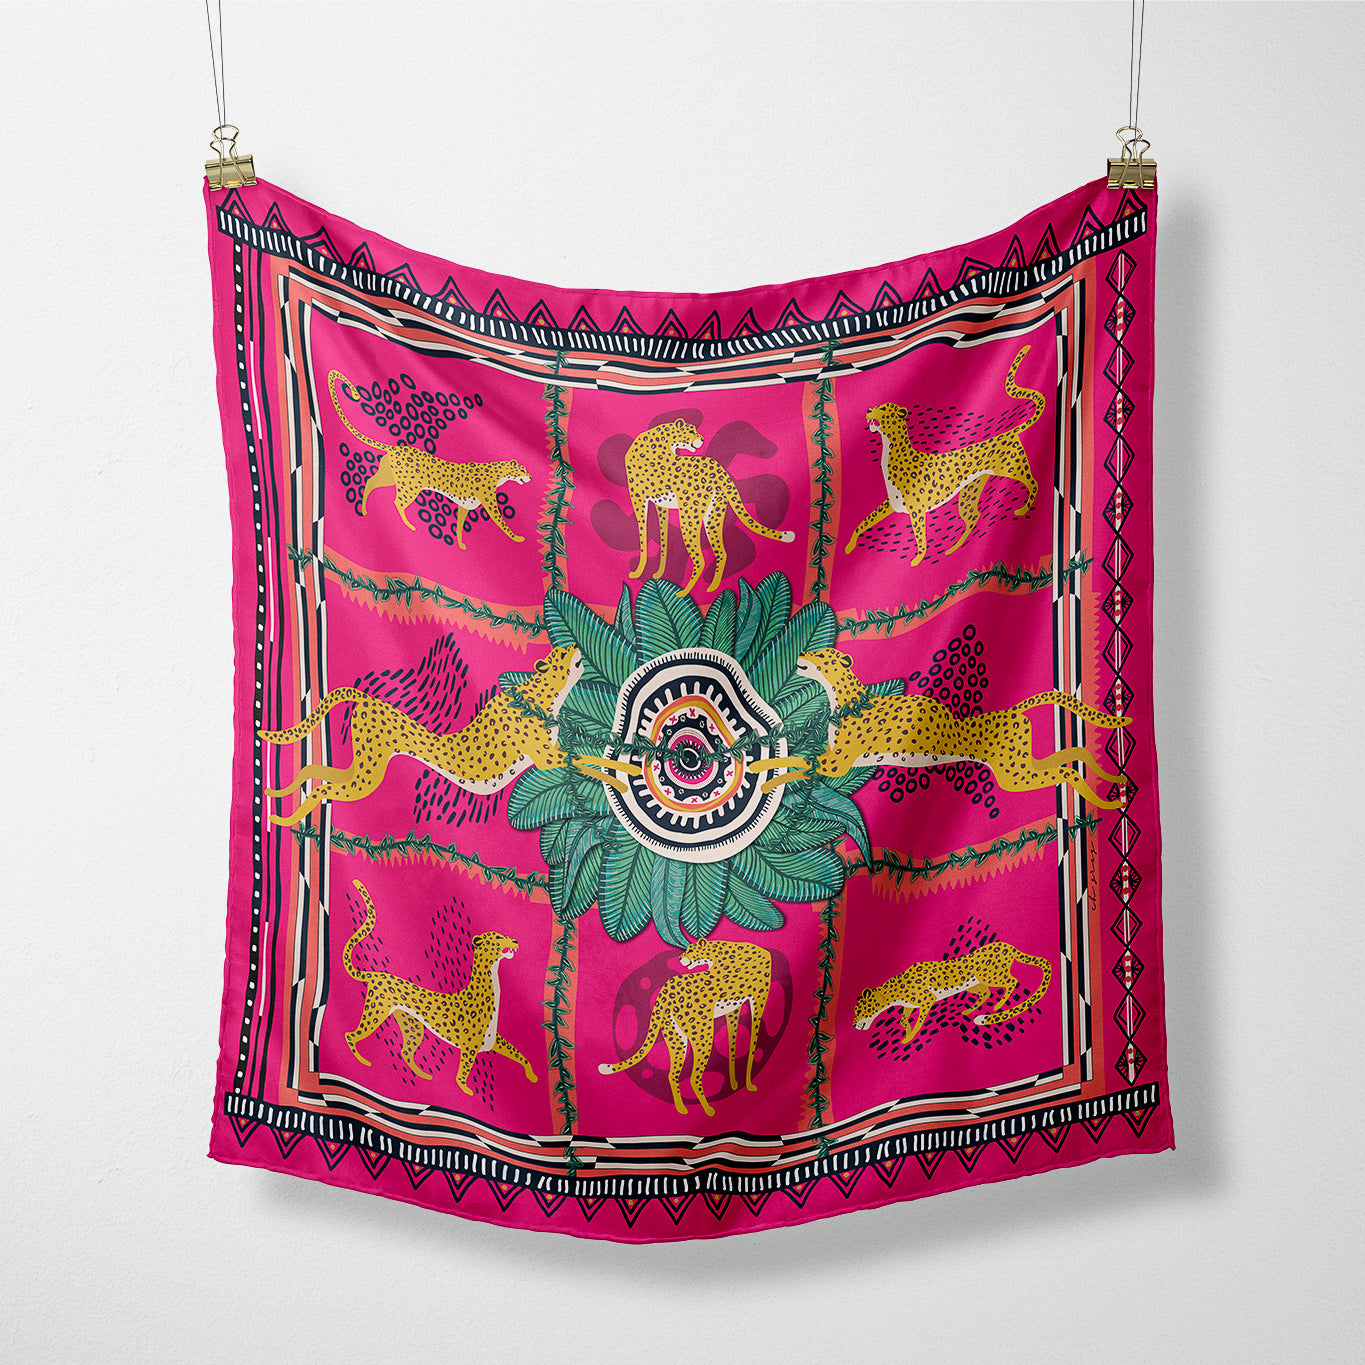 The Kiki Silk Scarf